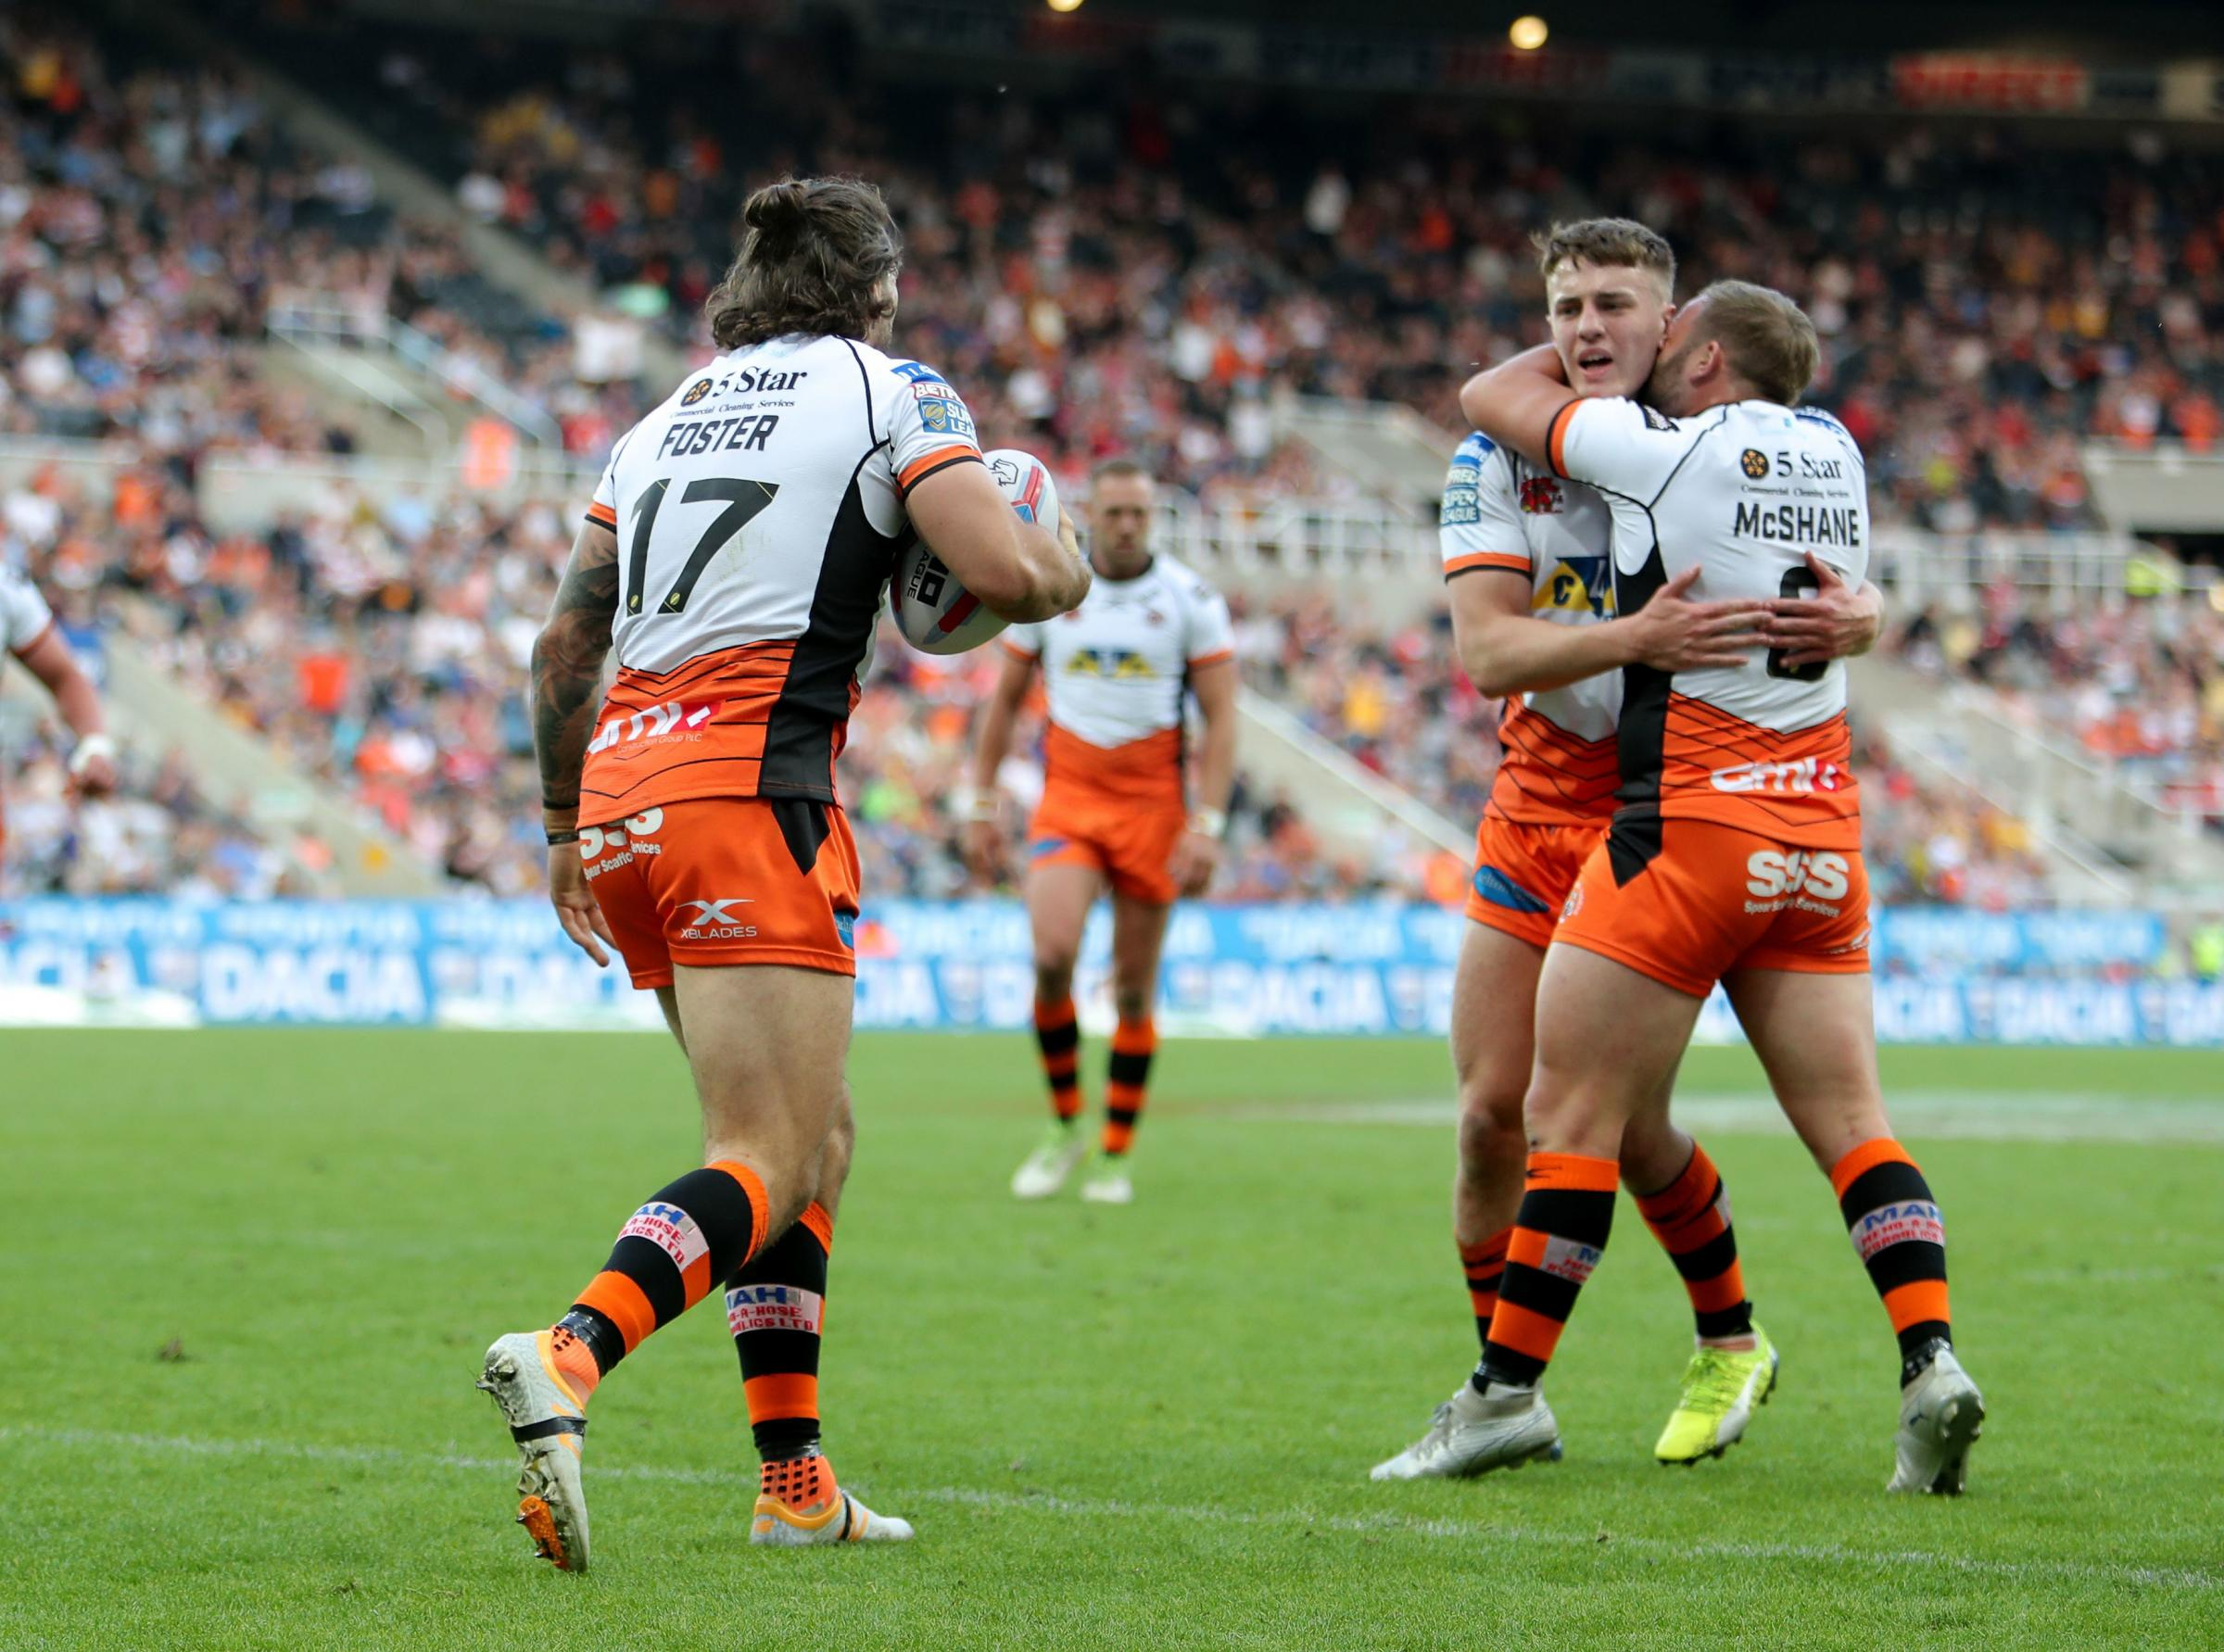 Castleford Tigers' Alex Foster celebrates with Jake Trumeman and Paul Mcshane during the Betfred Super League, Magic Weekend match at St James' Park, Newcastle. PRESS ASSOCIATION Photo. Picture date: Saturday May 19, 2018. See PA story RUGBYL Cast